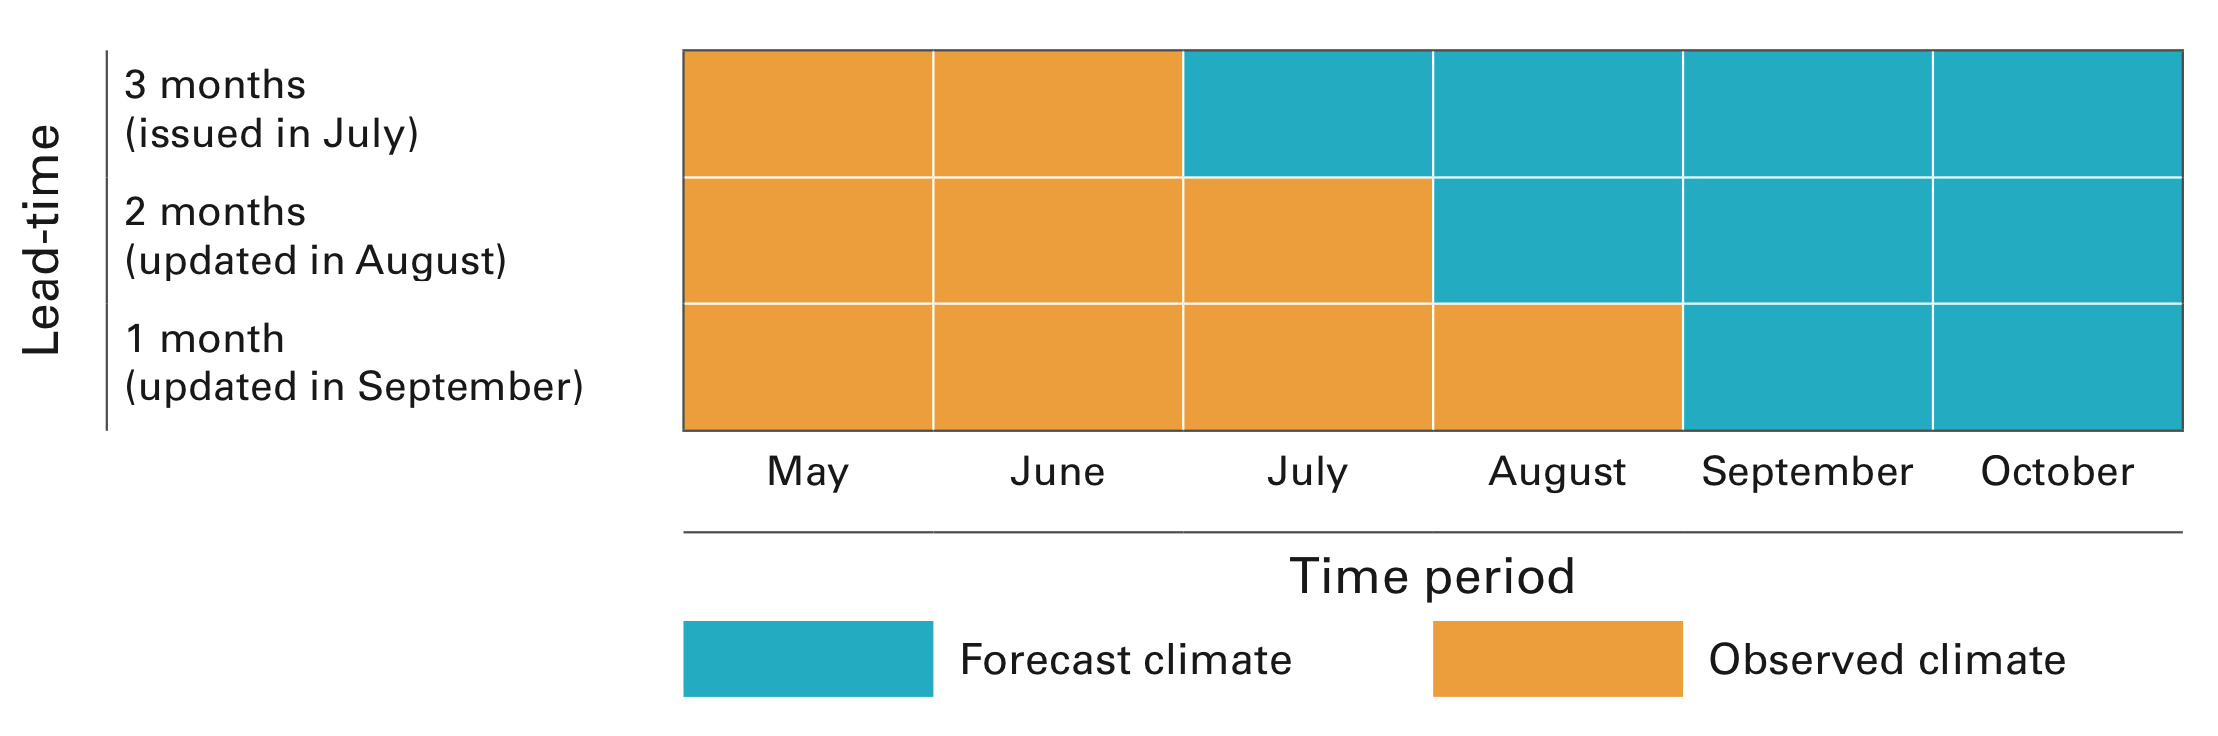 Schematic showing type of climate information